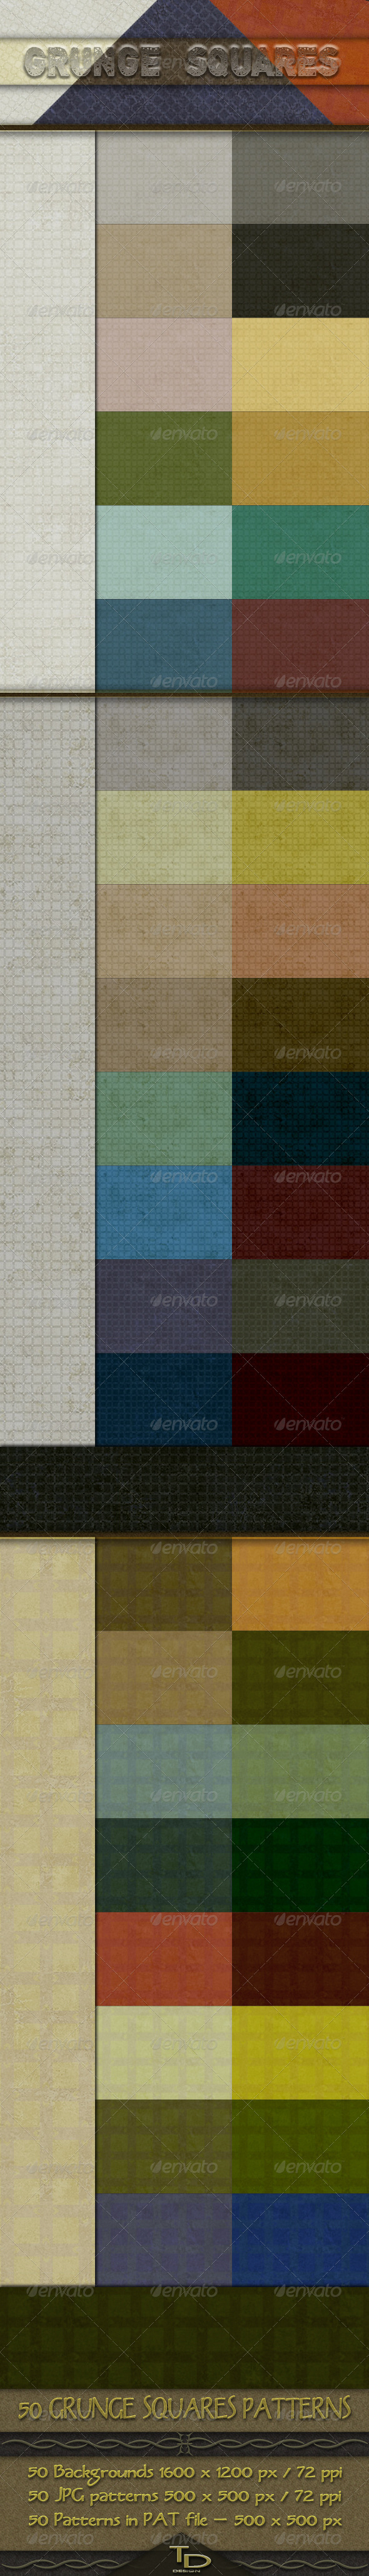 50 Grunge Squares Background Patterns - Urban Textures / Fills / Patterns